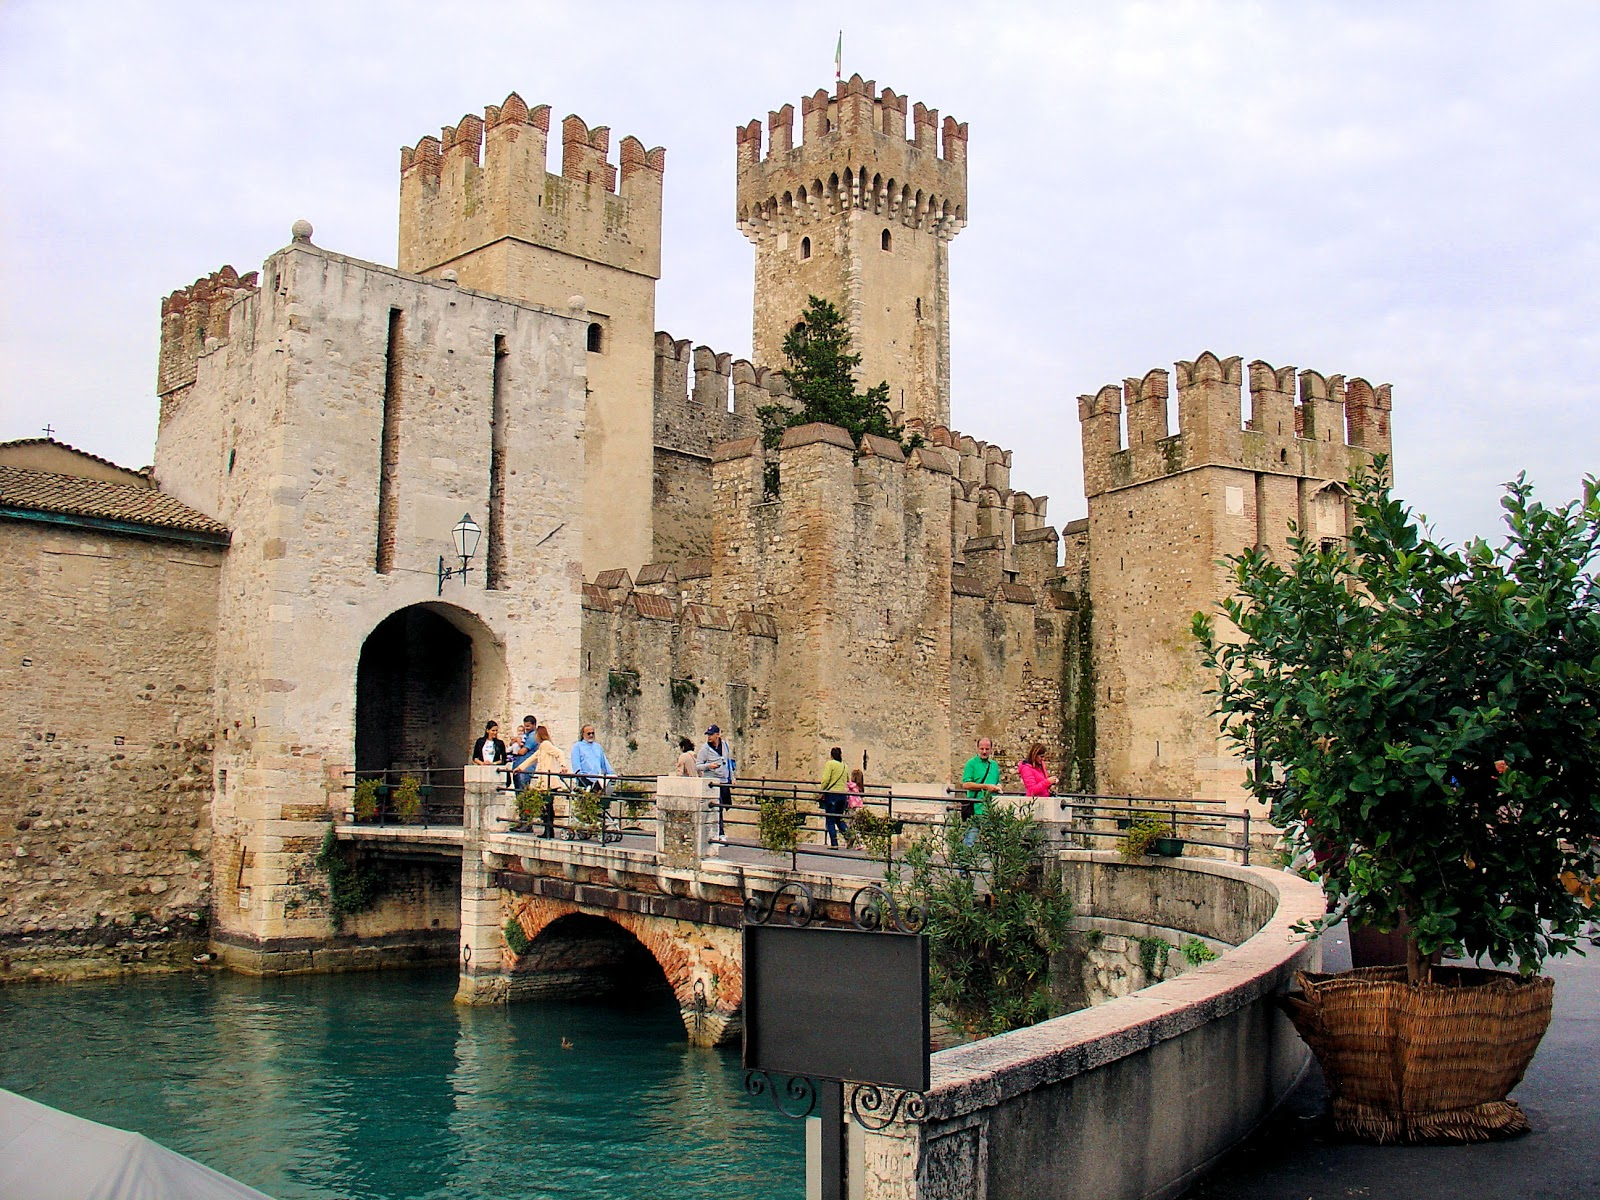 Travel back in time to the 13th-century fortress—Castello Scaligera or Scaligera Castle originally built for the della Scala family (Scaligeri) of Verona.